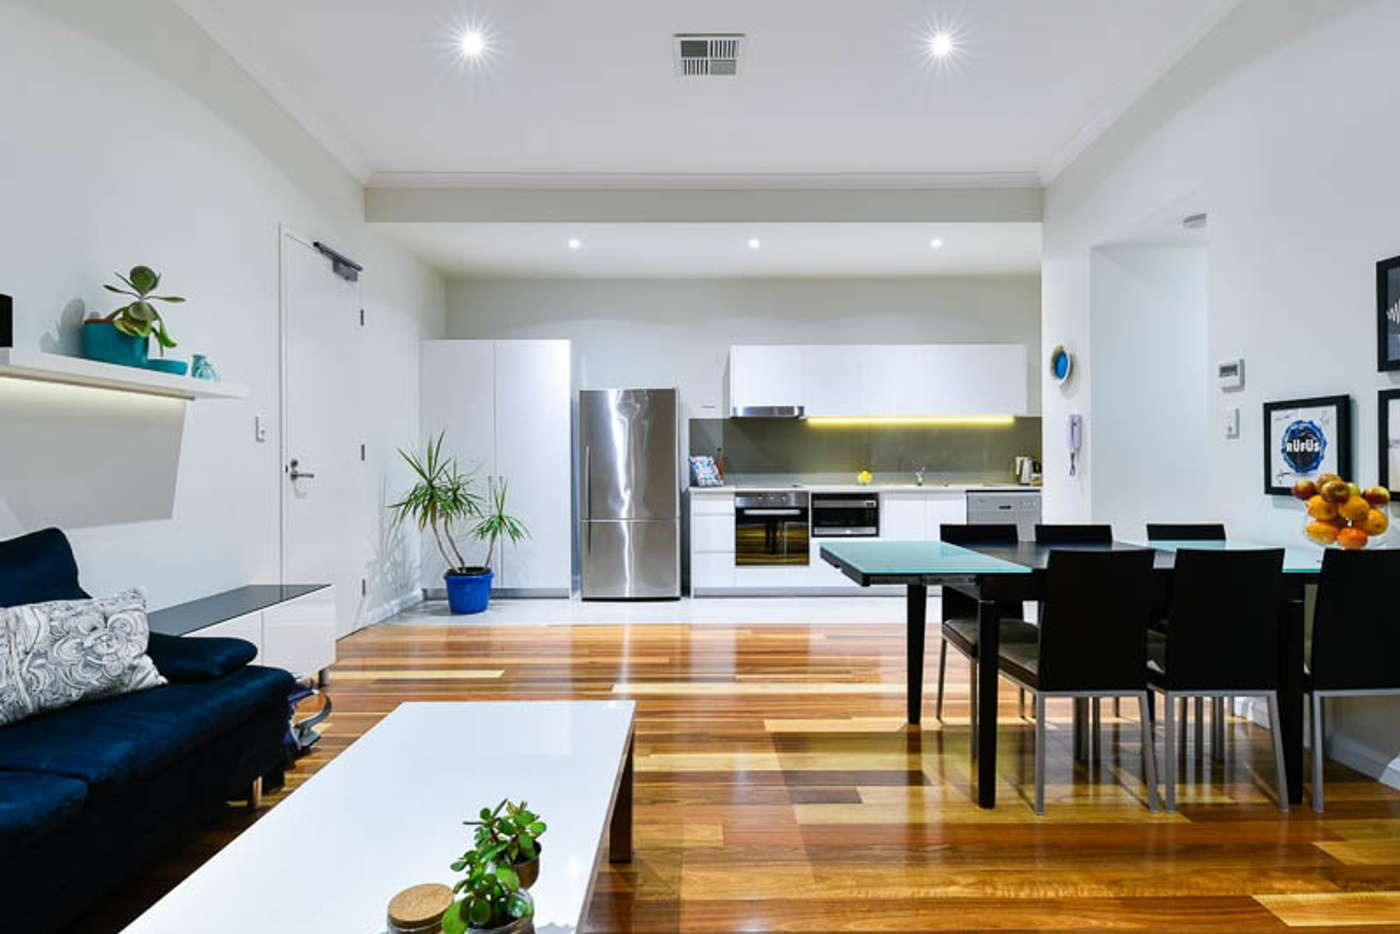 Main view of Homely apartment listing, 39/28 Goodwood Pde, Burswood WA 6100